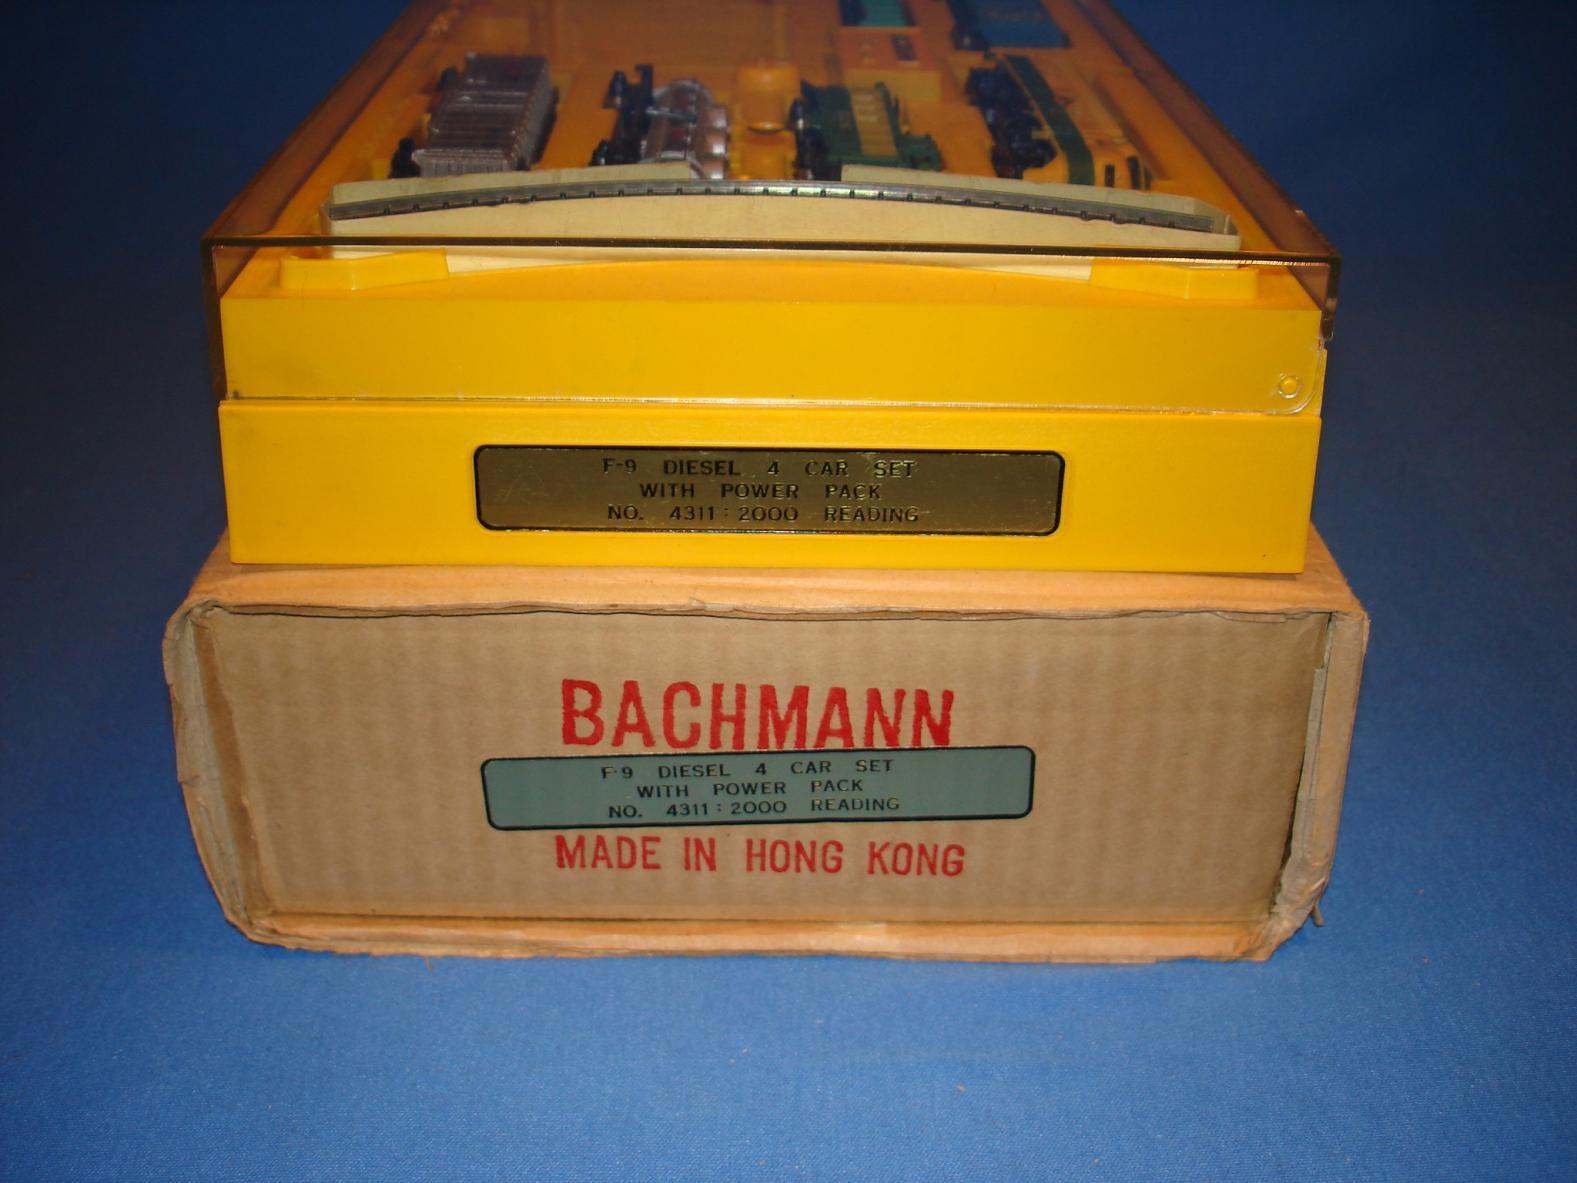 Bachmann N Gauge Train Set NMIB Package